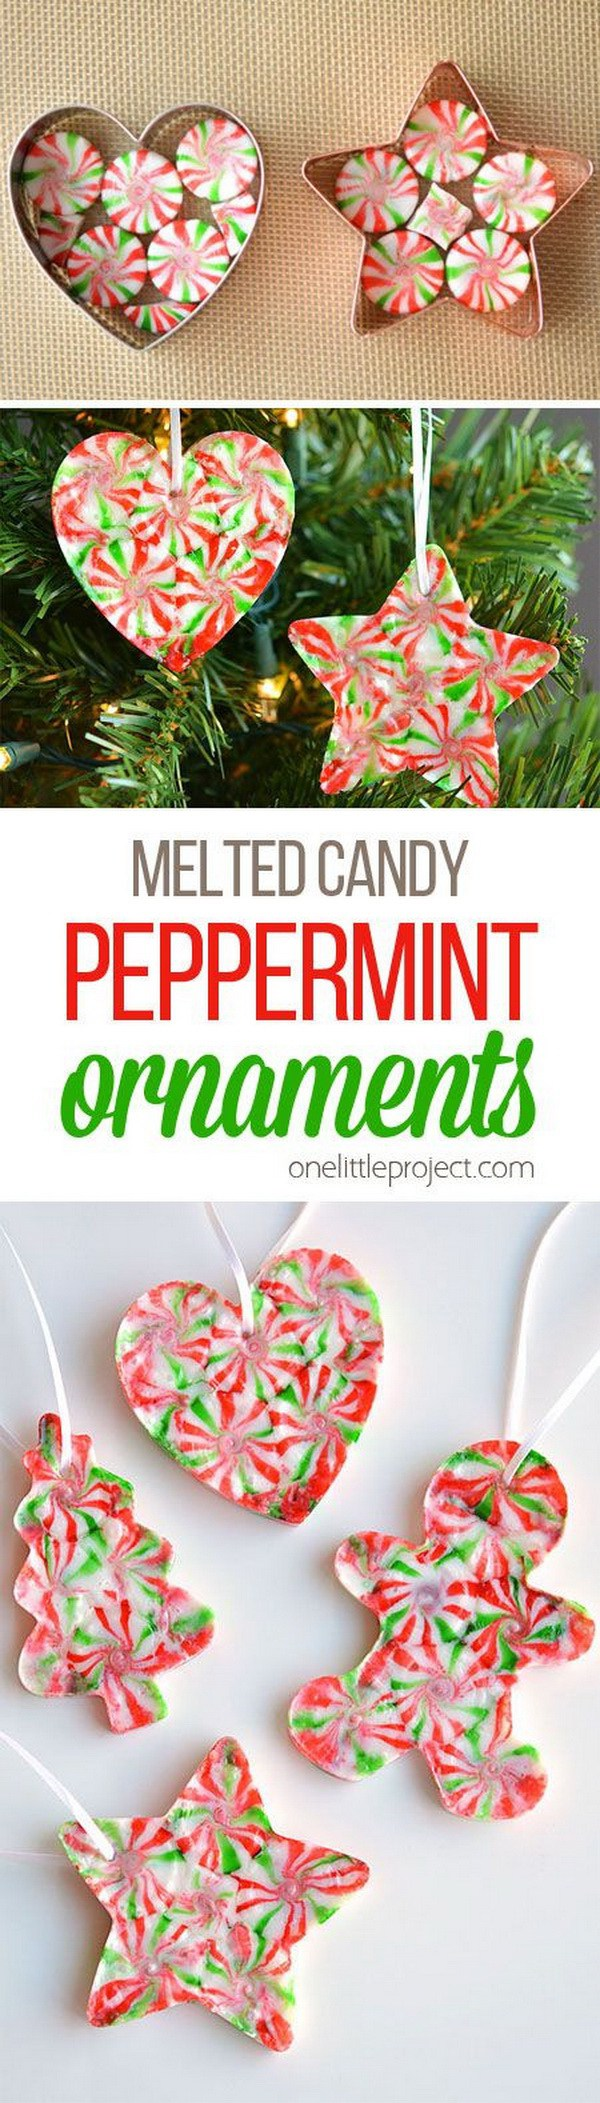 DIY Christmas Tree Ornaments: 17 Great Tutorials and Ideas (Part 2)